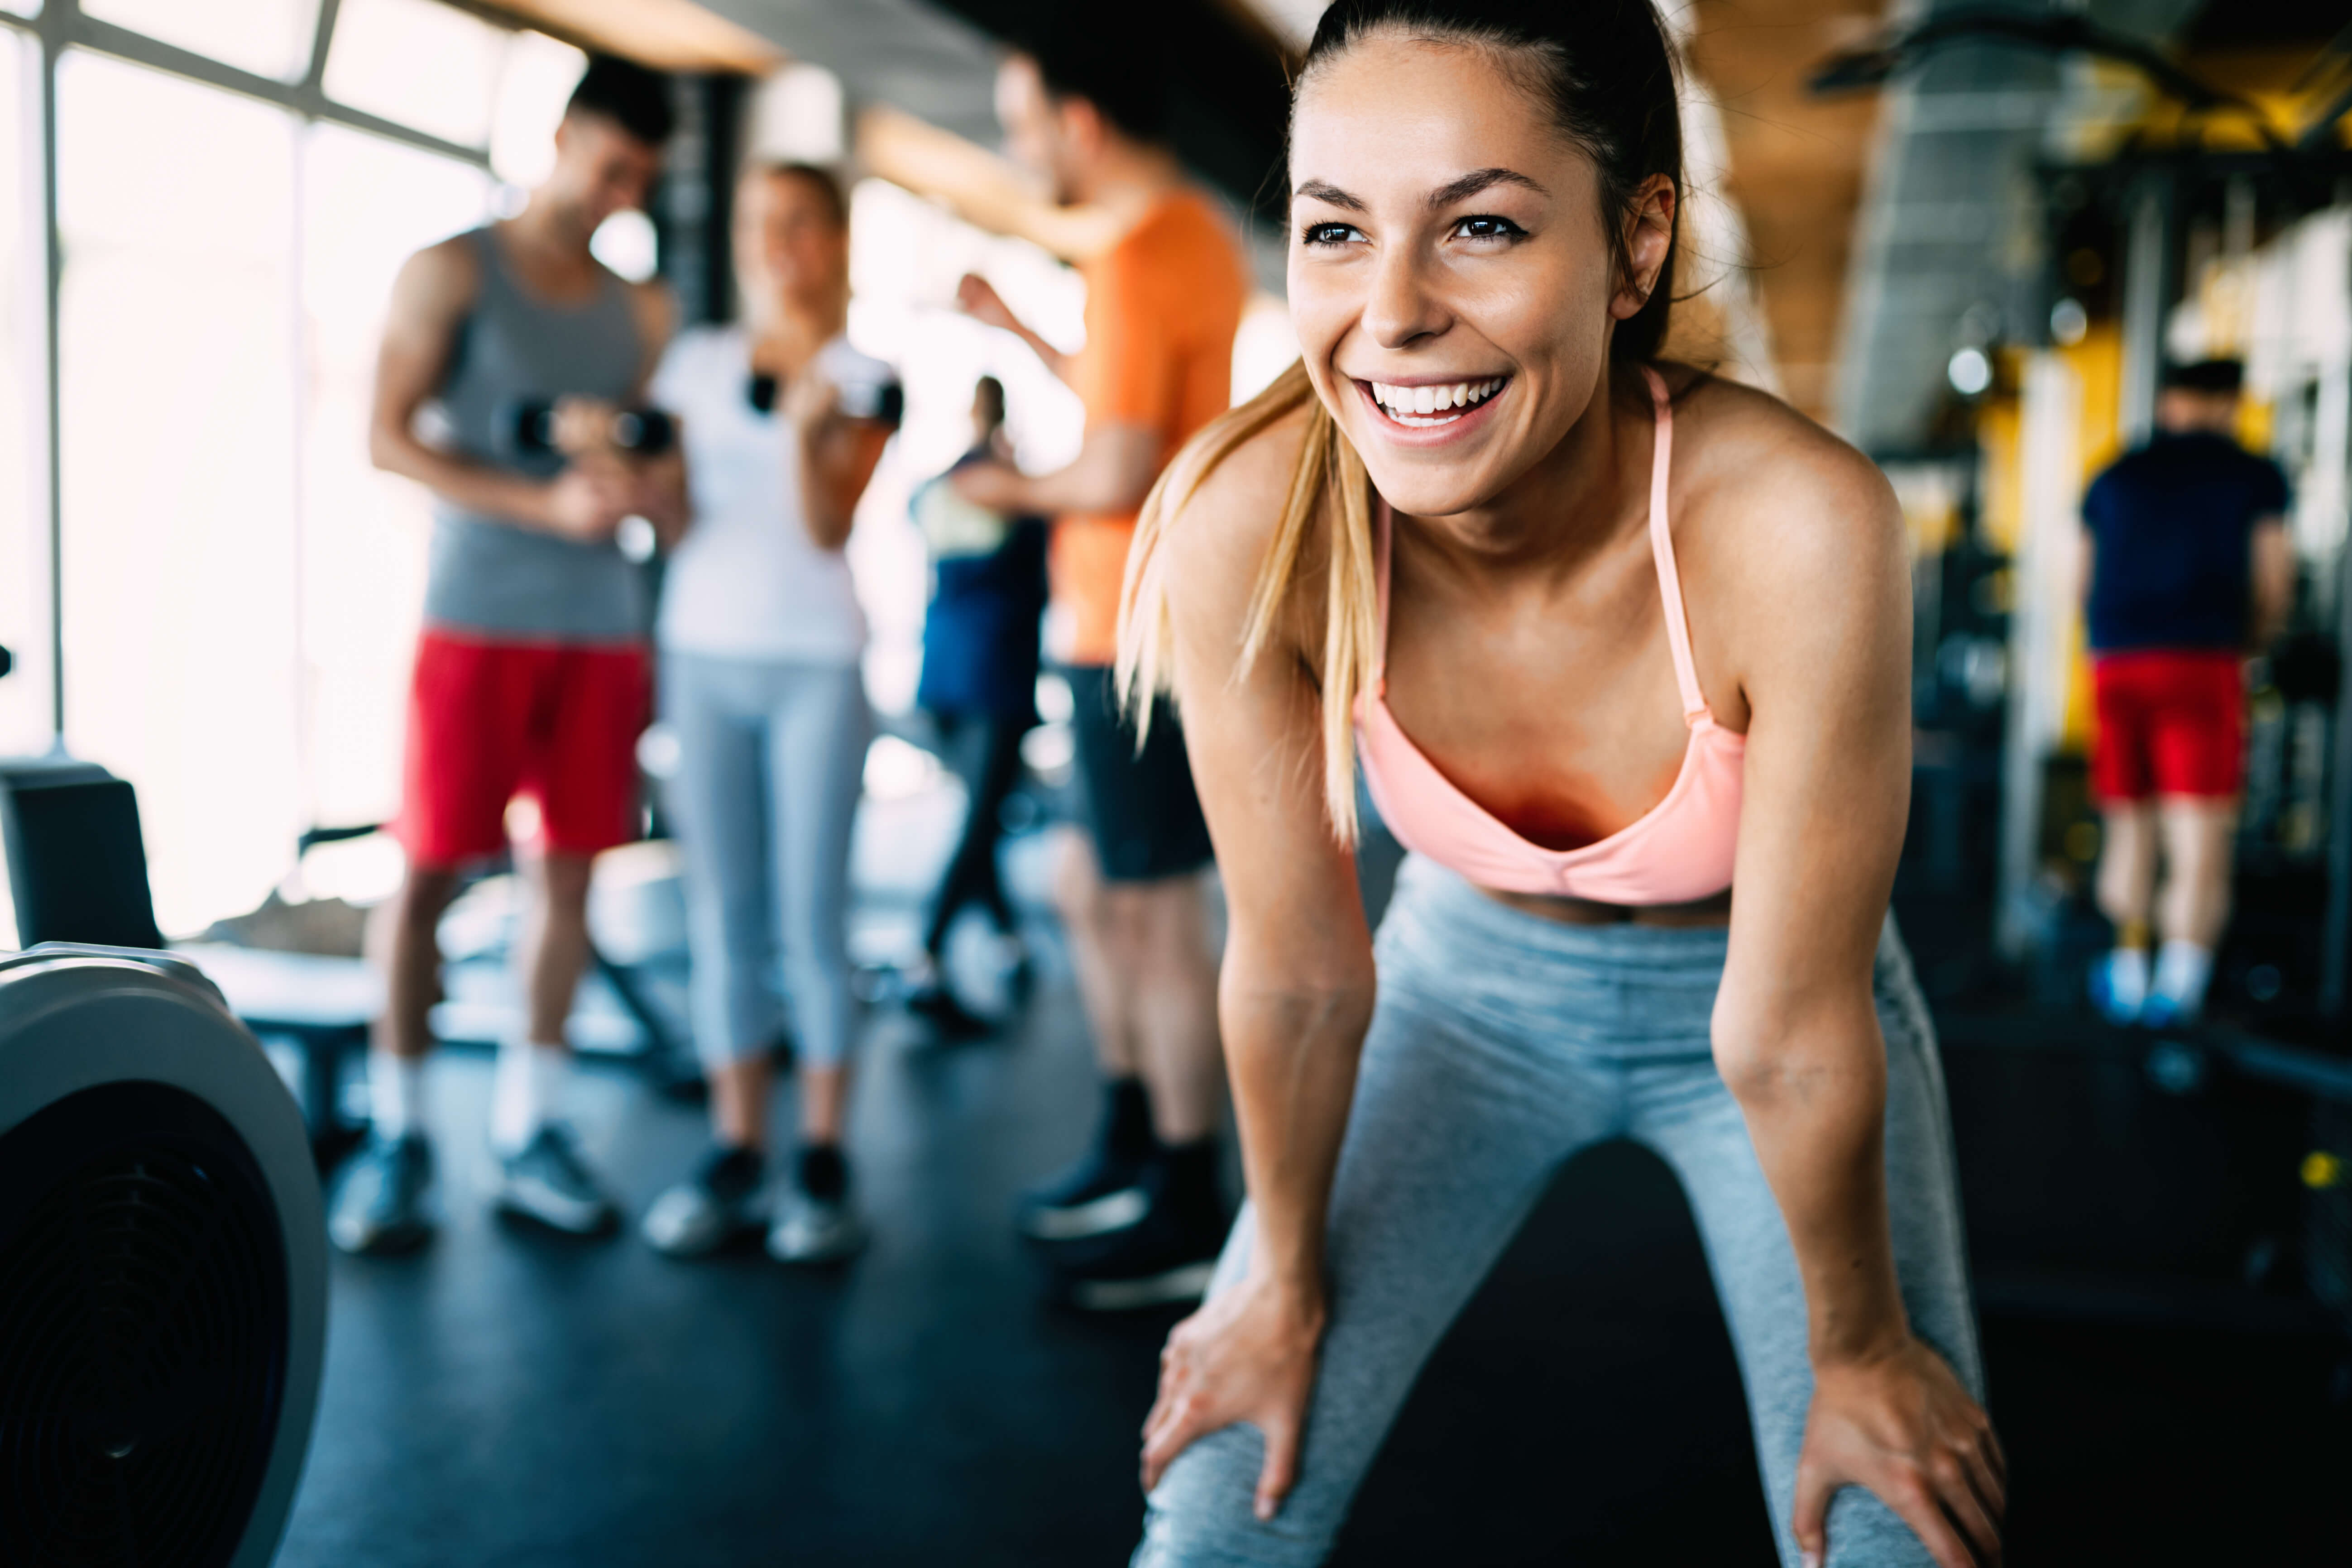 young woman smiling in a gym